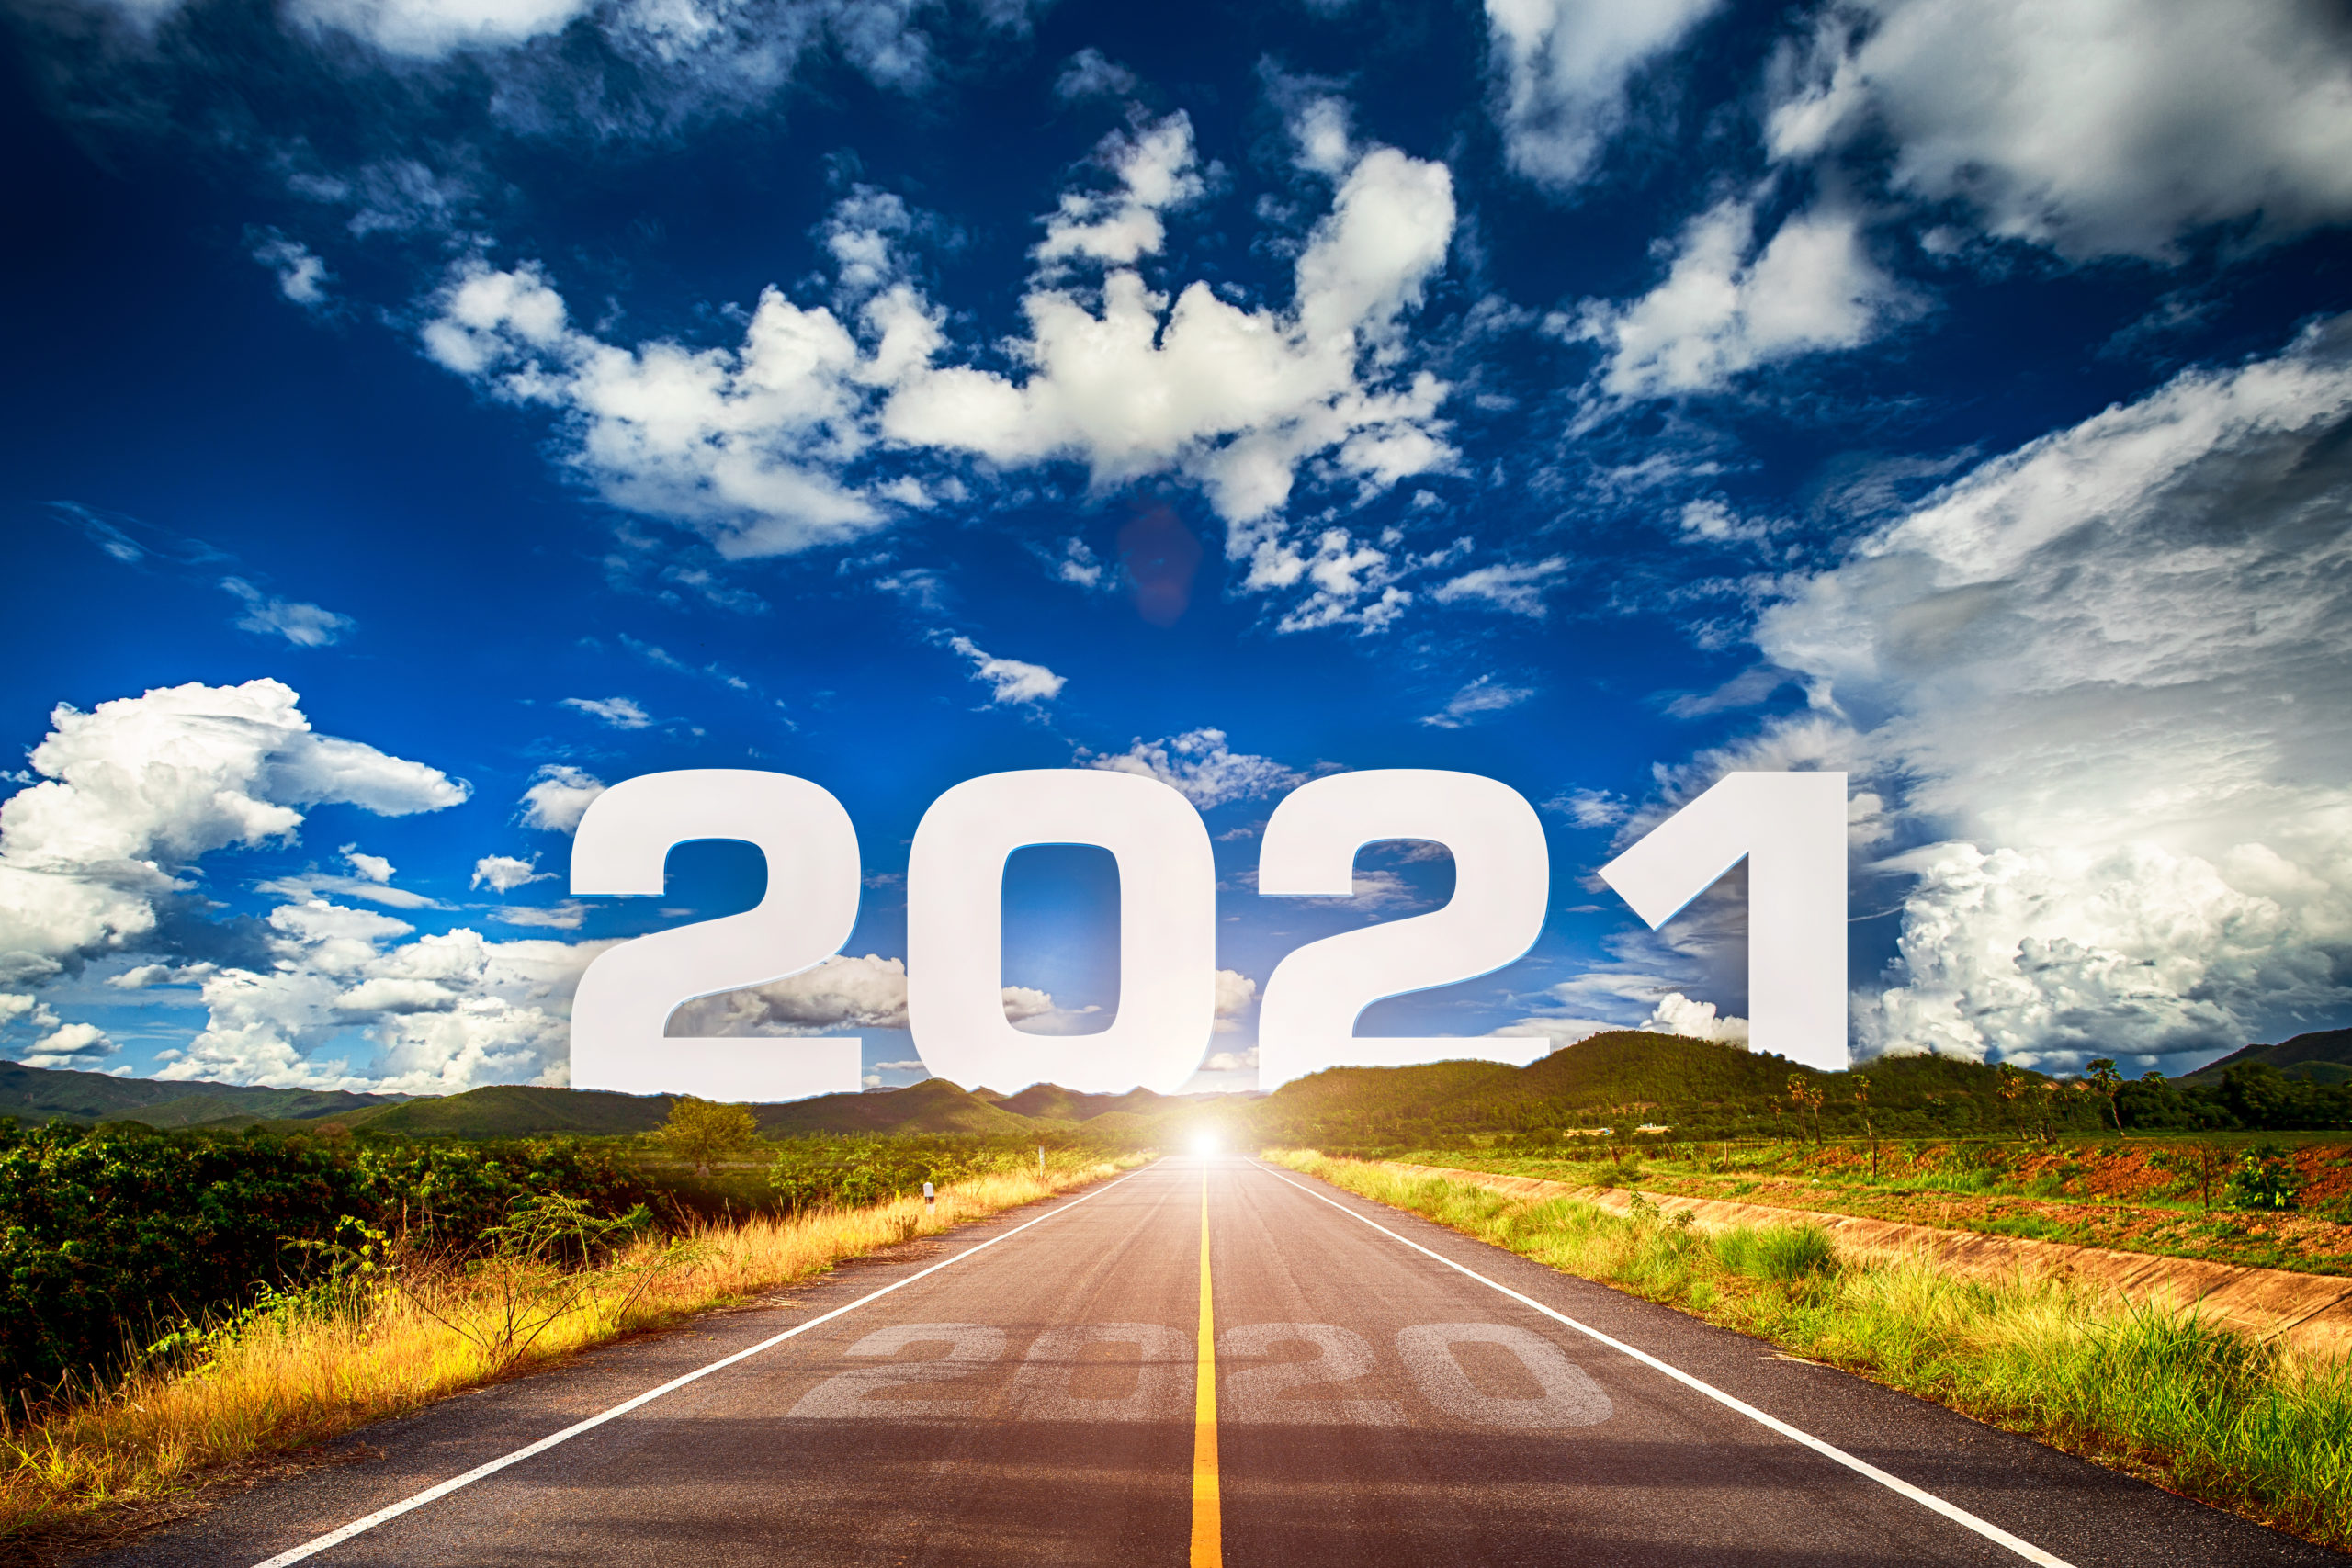 The Word 2021 Behind The Mountain Of Empty Asphalt Road At Golden Sunset And Beautiful Blue Sky. Concept For Vision Year 2021. By Atk Work Scaled